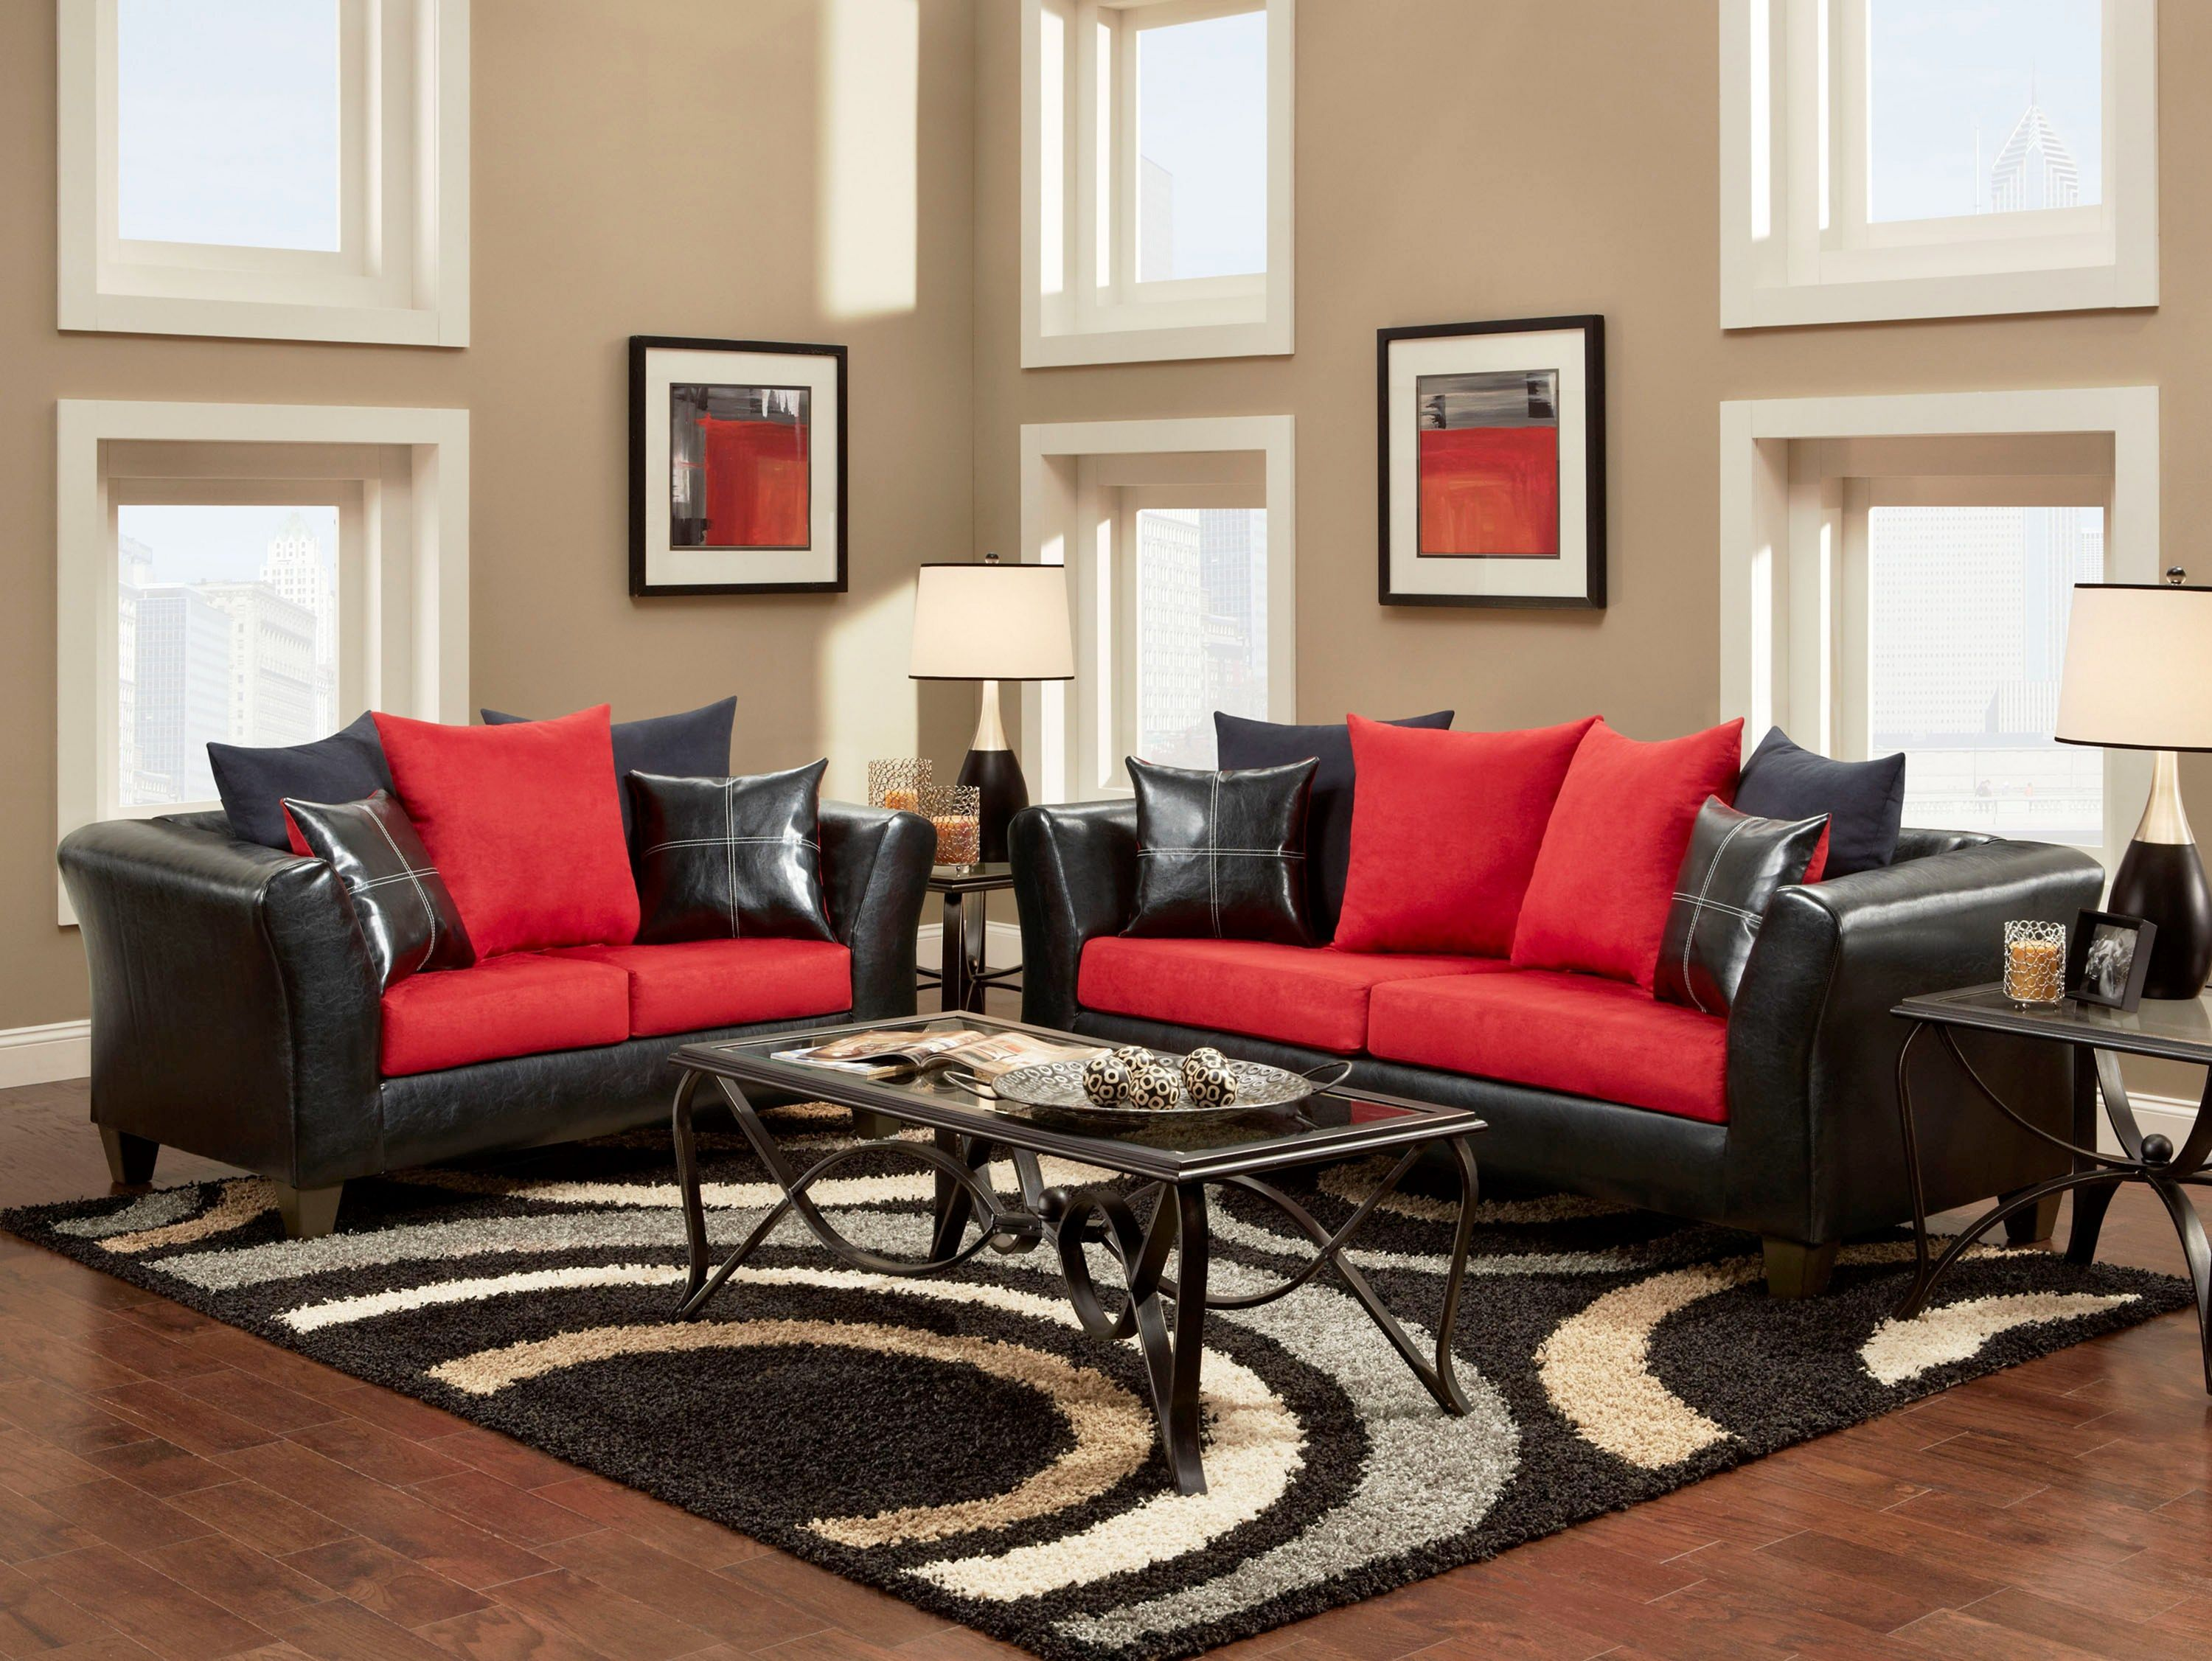 Pin By Gloria Moore On Decoration Red Living Room Decor Living Room Red Black And Red Living Room #red #furniture #living #room